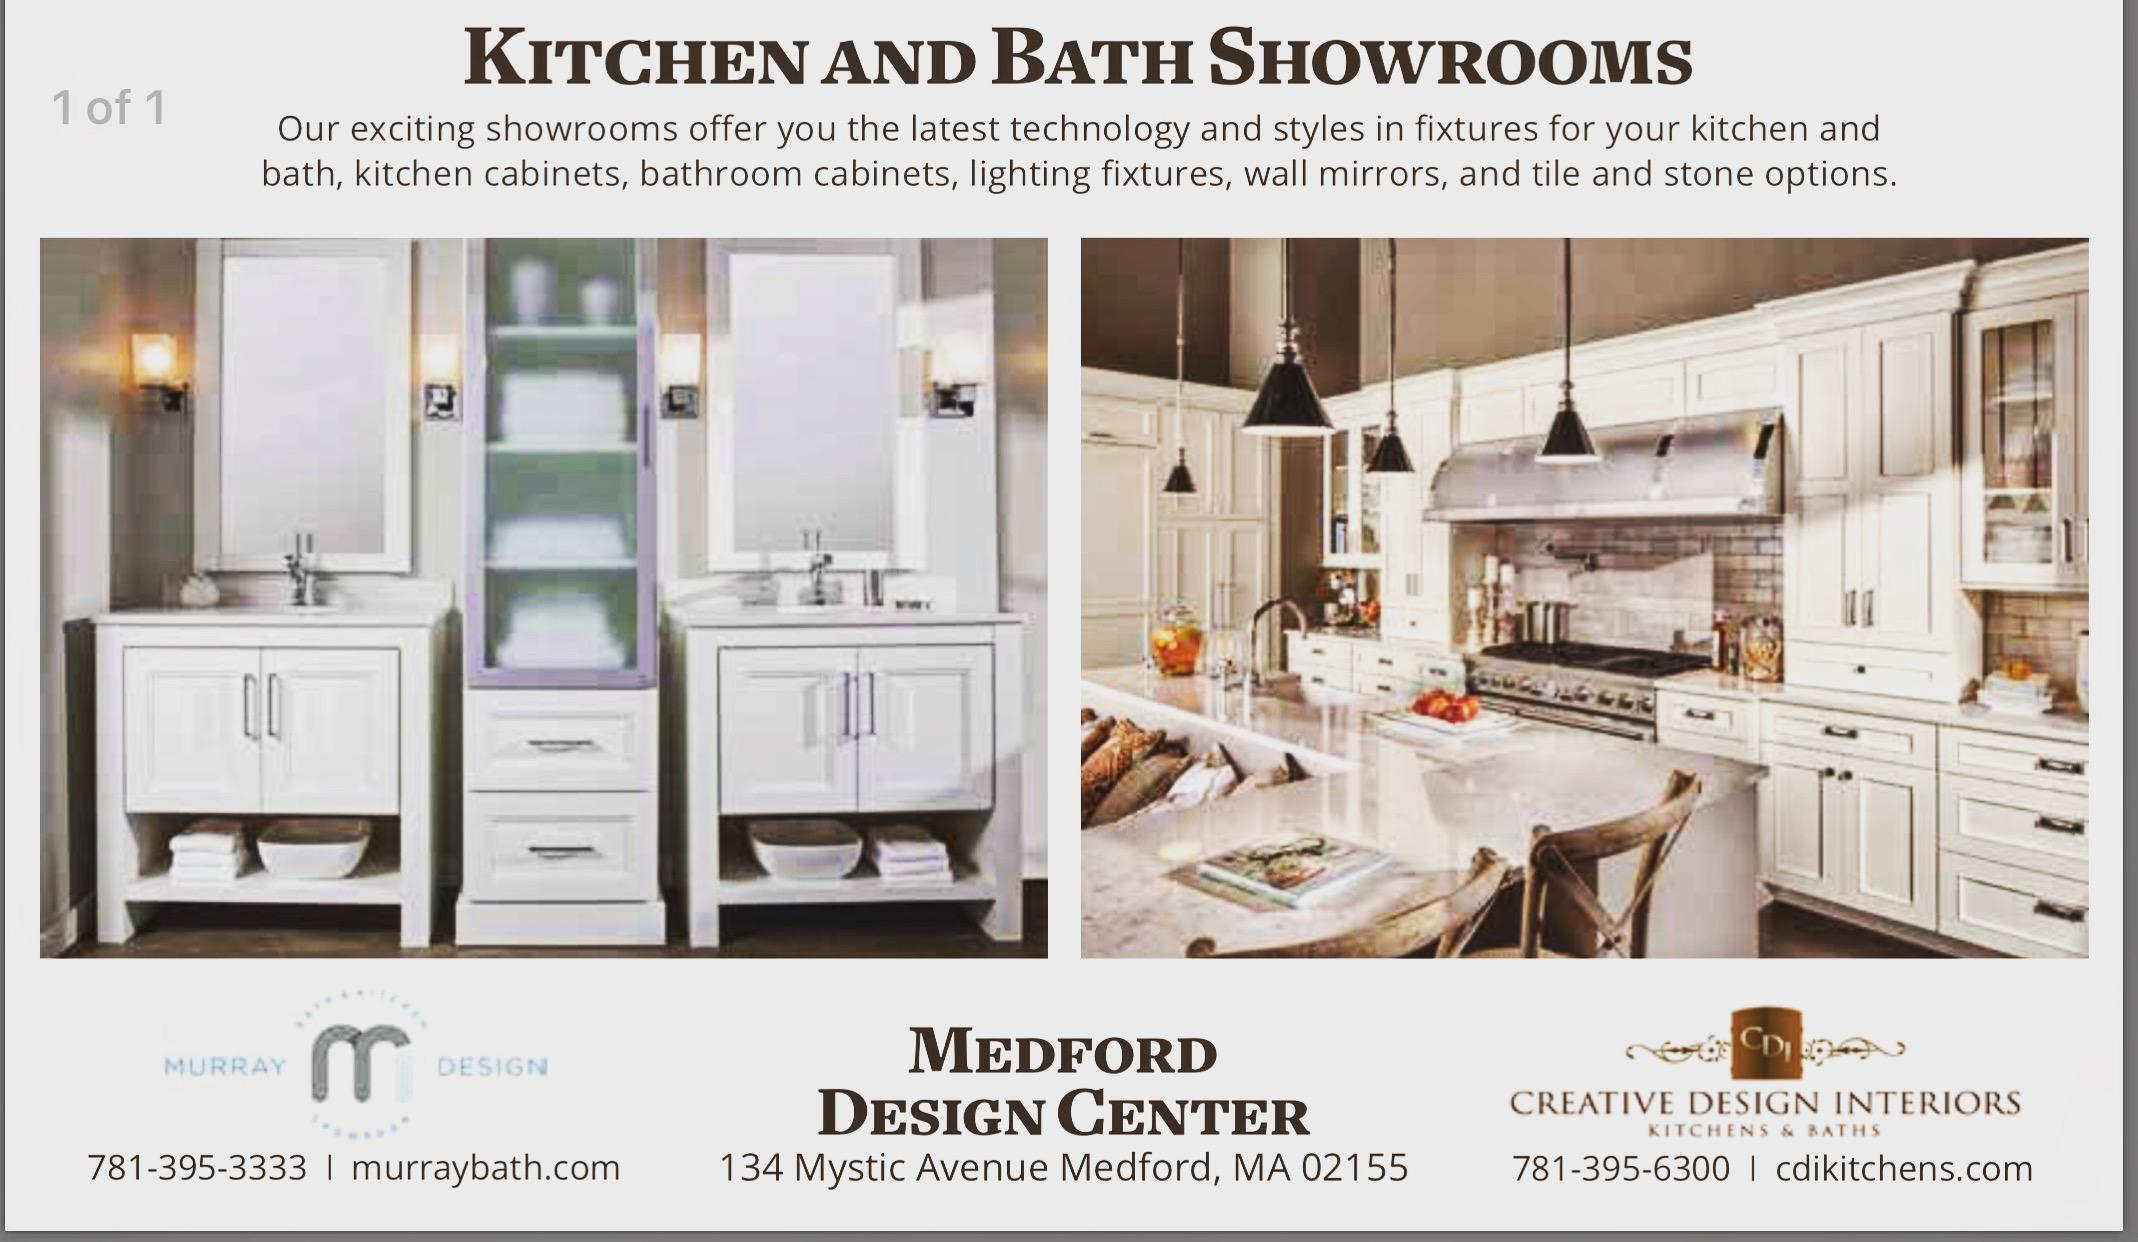 Creative Design Interiors Kitchen And Bath Medford Ma Business Directory